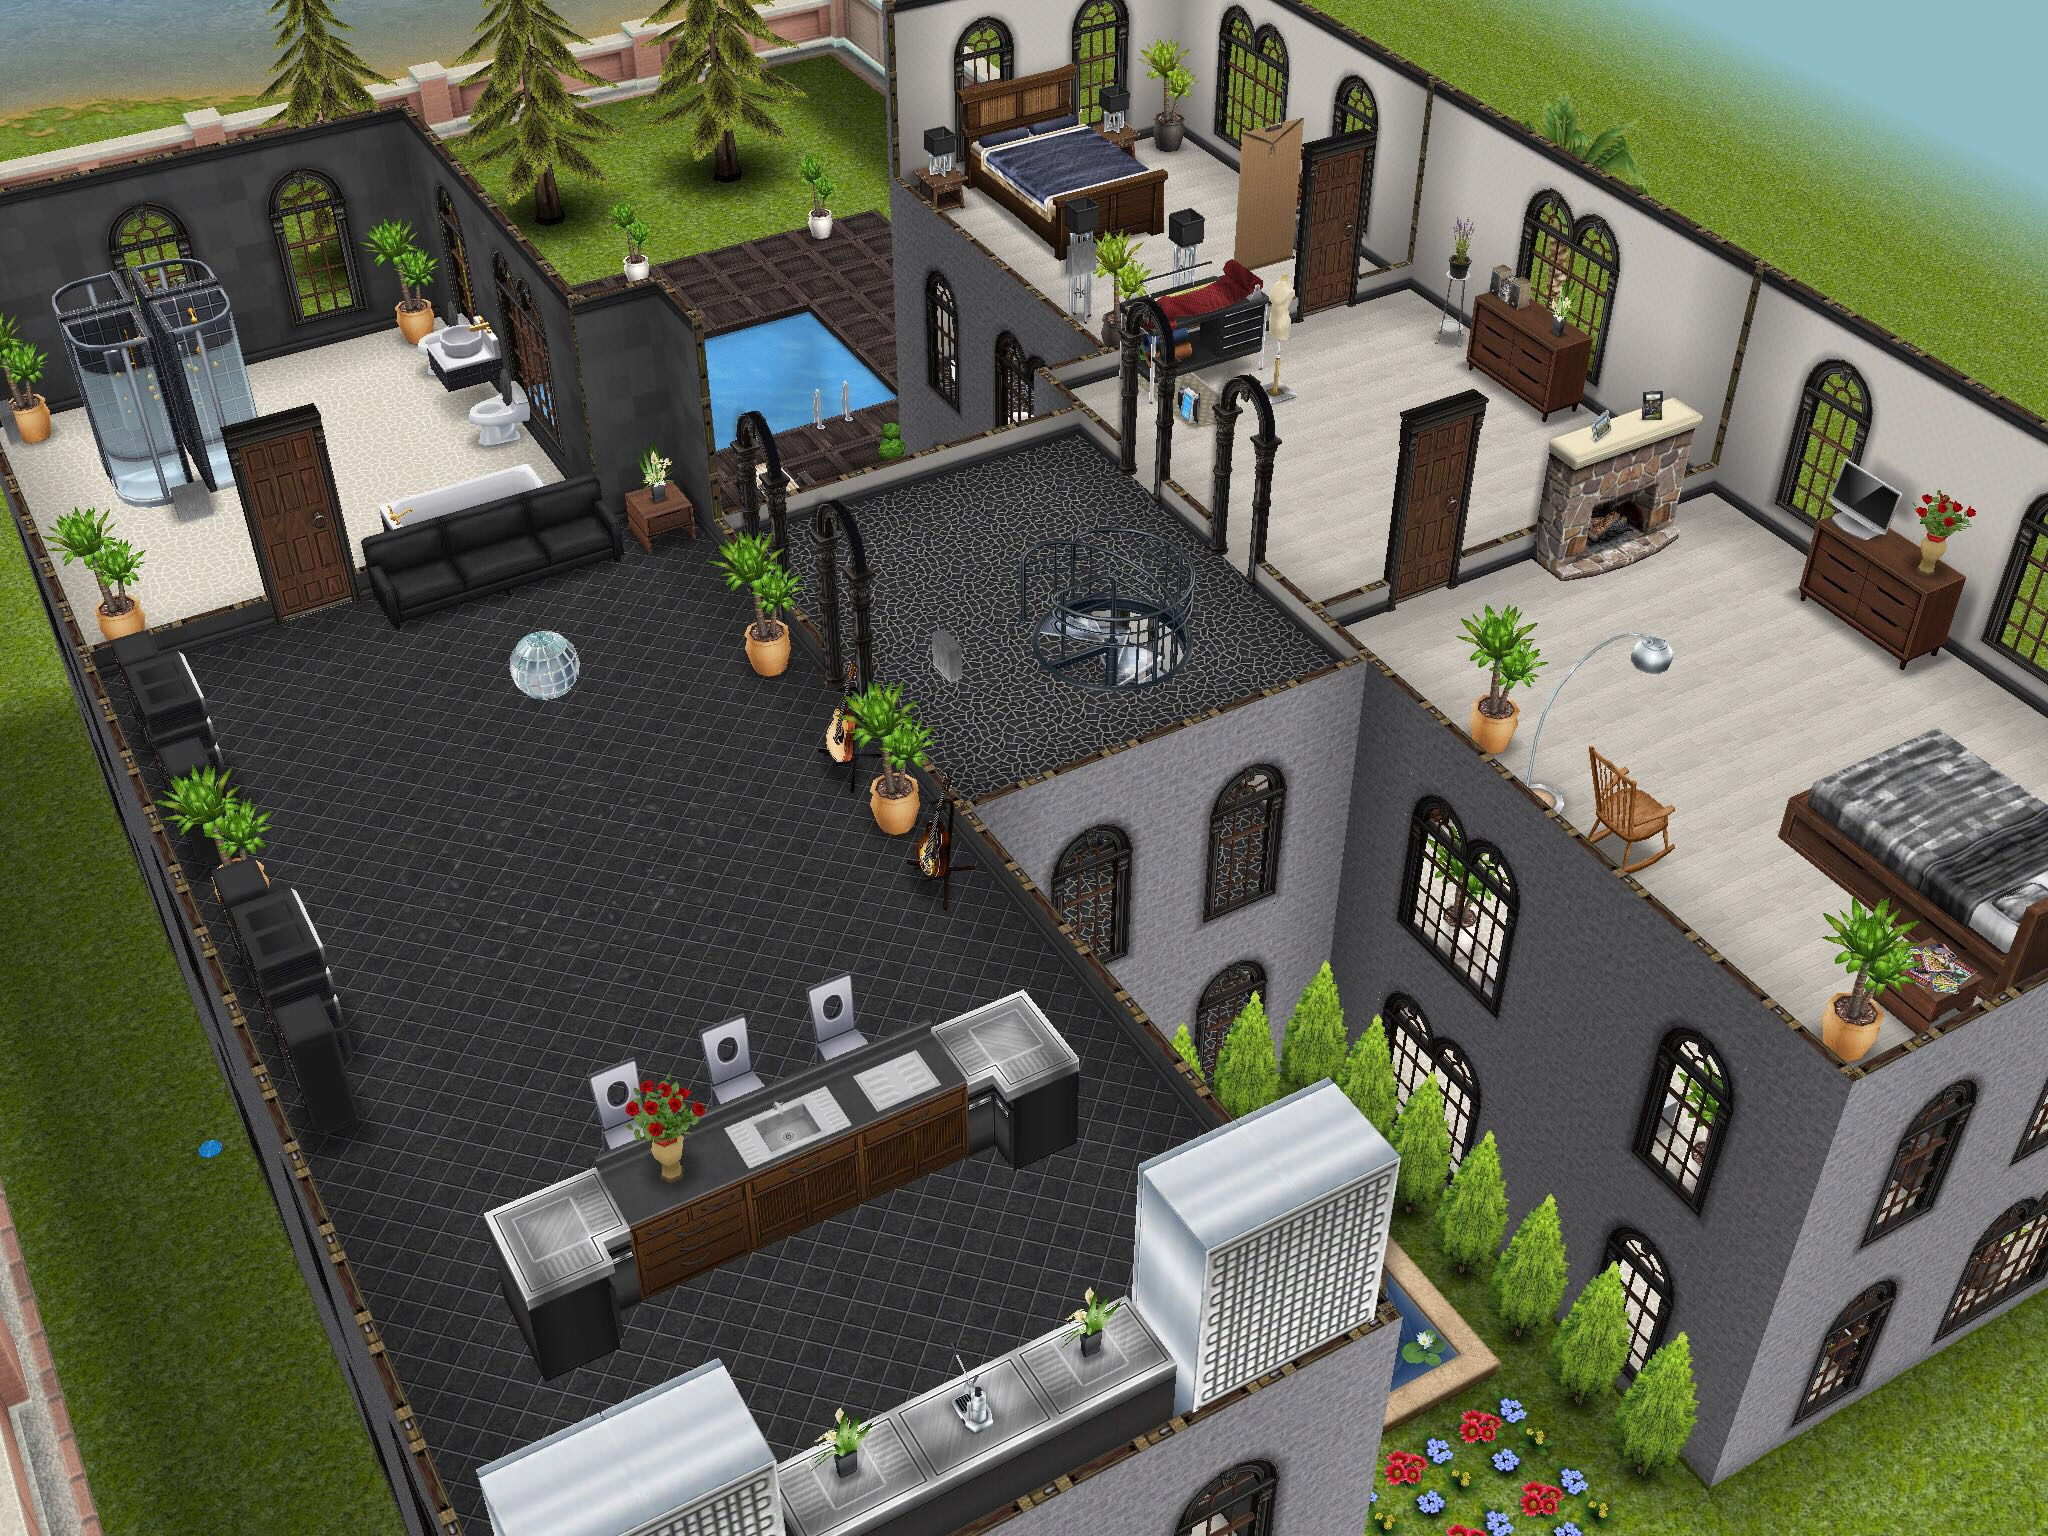 Floor Elevation Sims 2 : Three story mansion rd floor designedbyjade sims